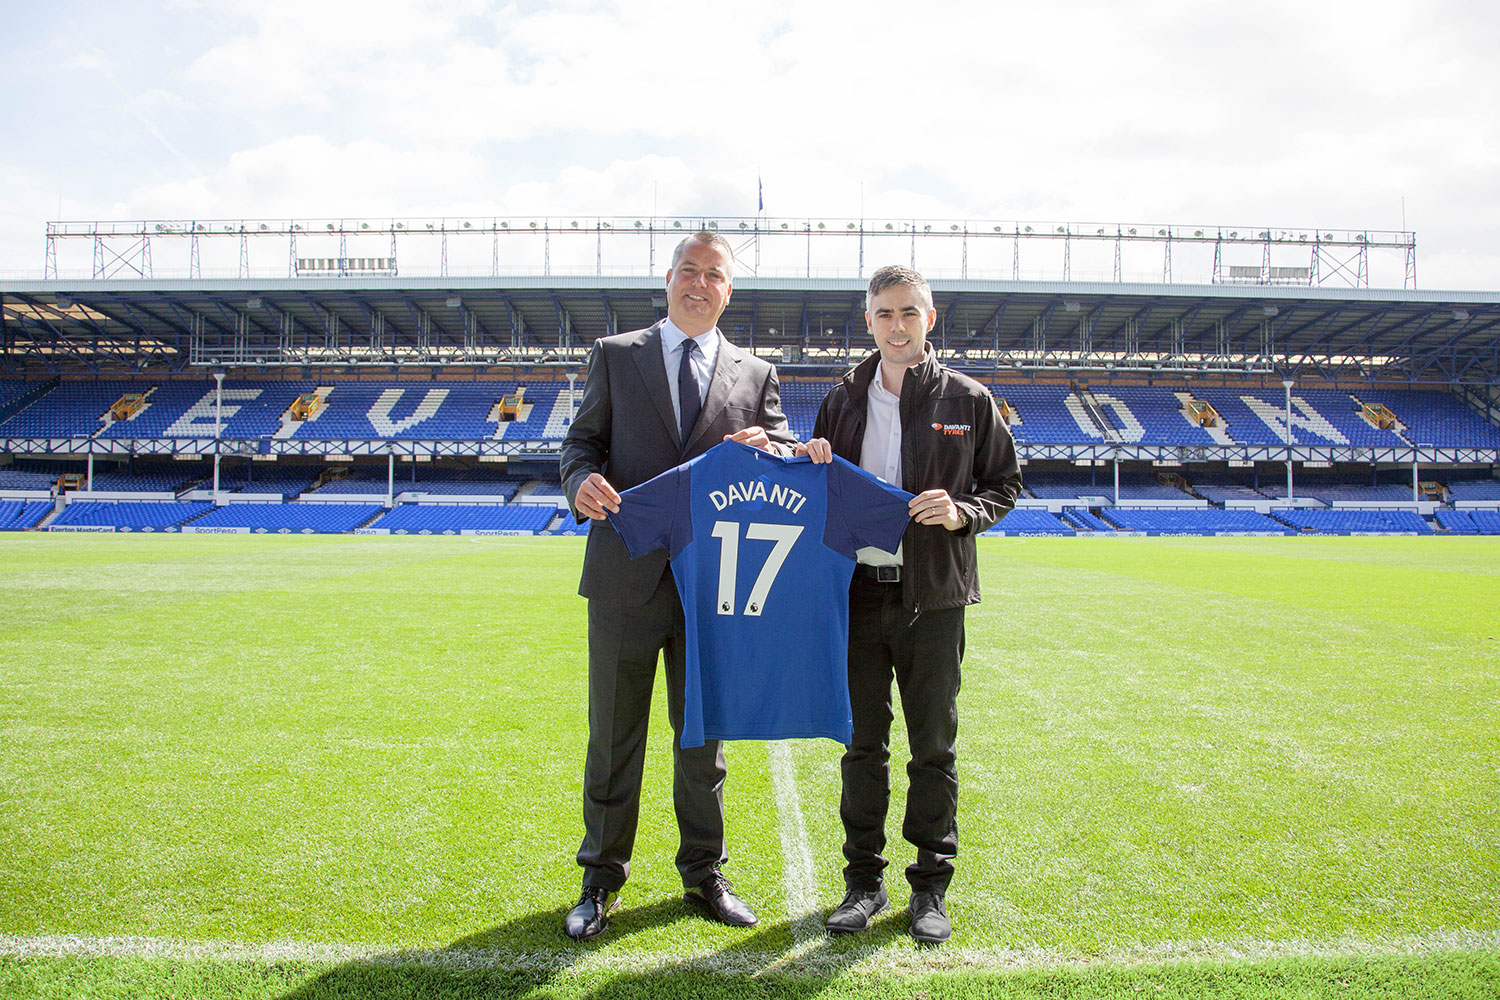 Davanti Tyres Wheels Out a Three-Year Partnership Deal with Everton Football Club